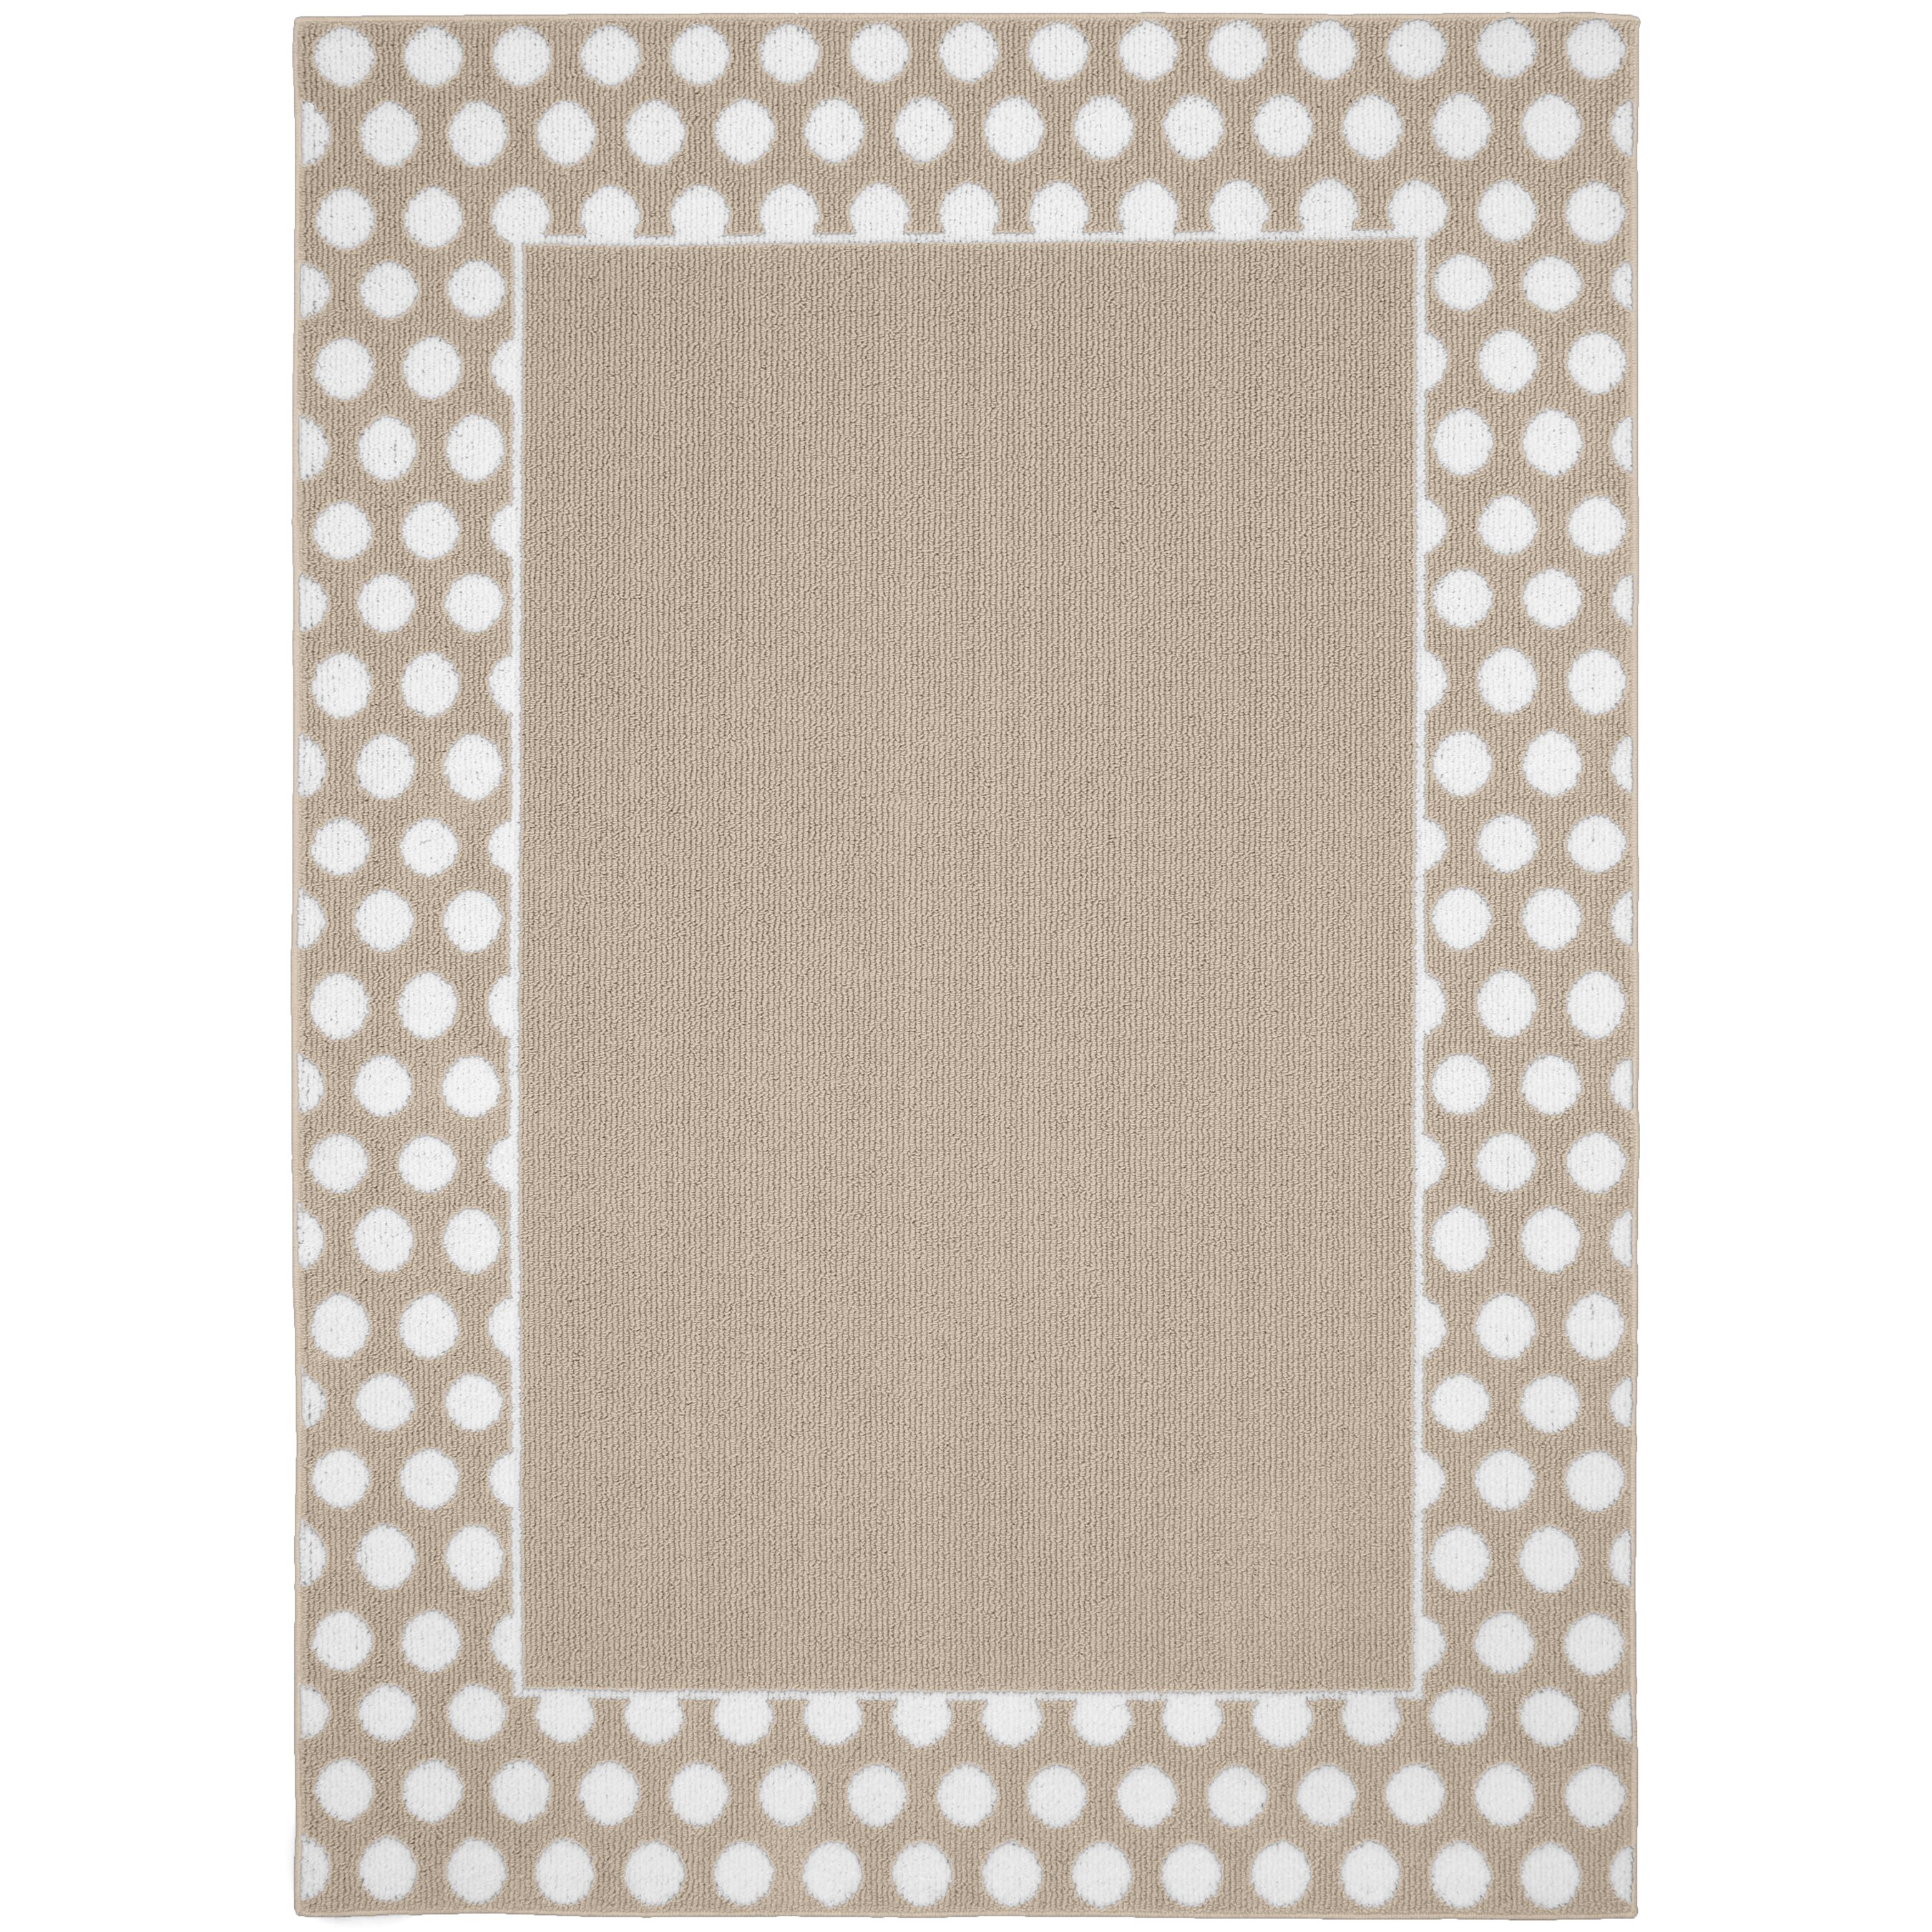 Tan And White Rug Home Decor